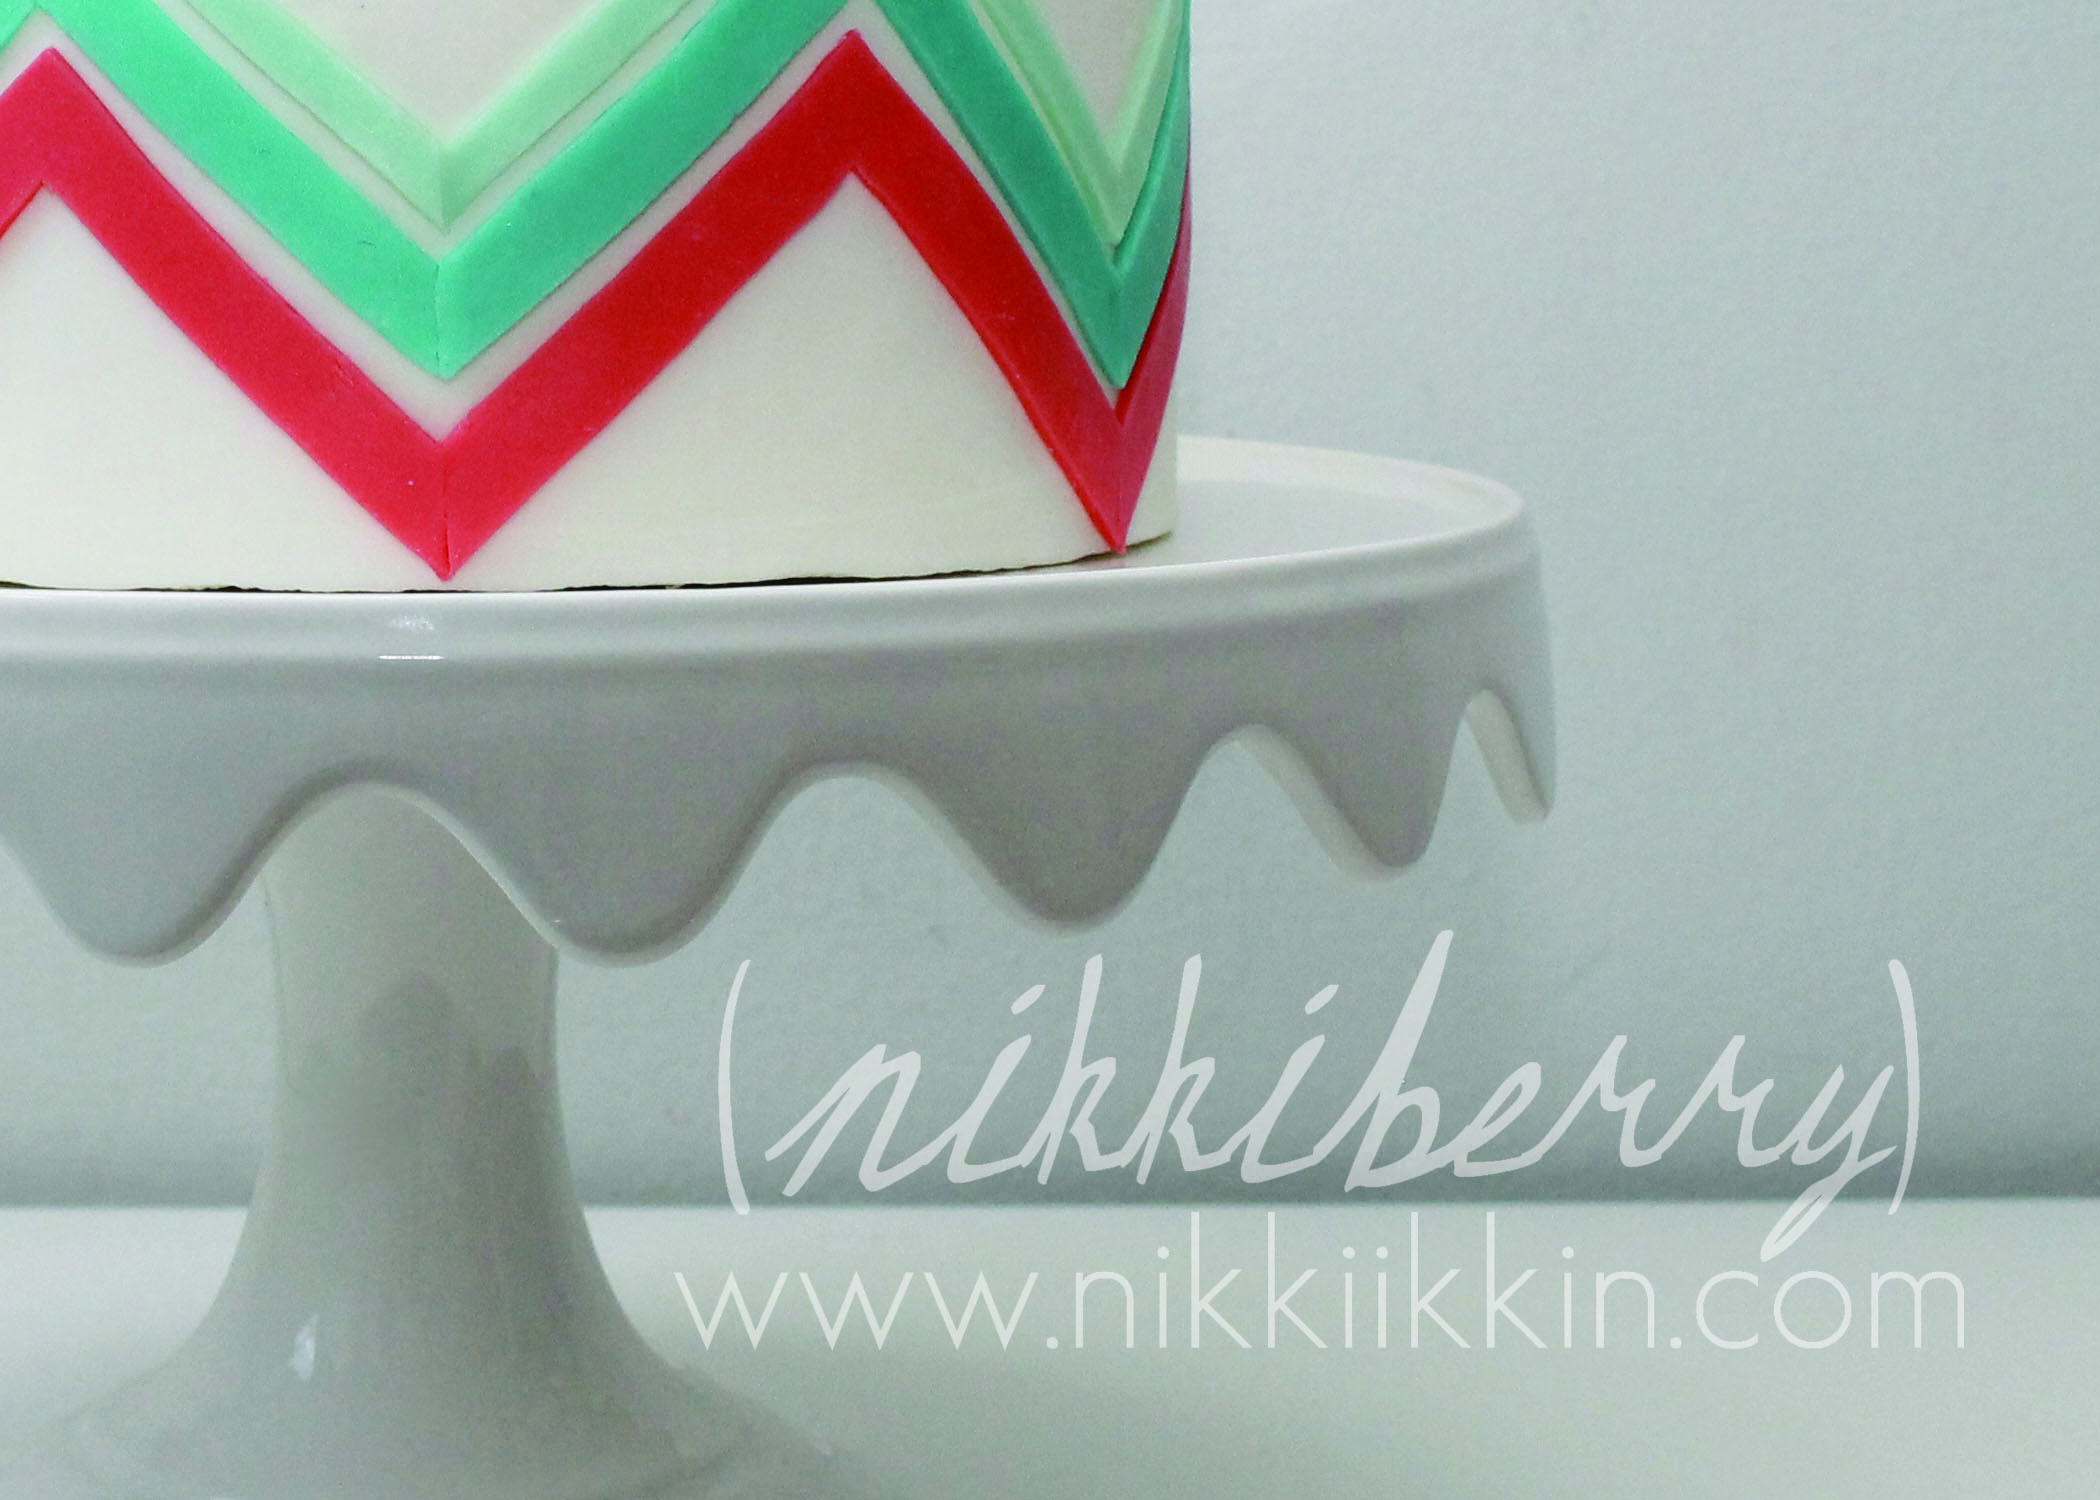 Cake Decorating Zig Zag : Zig Zag Cake